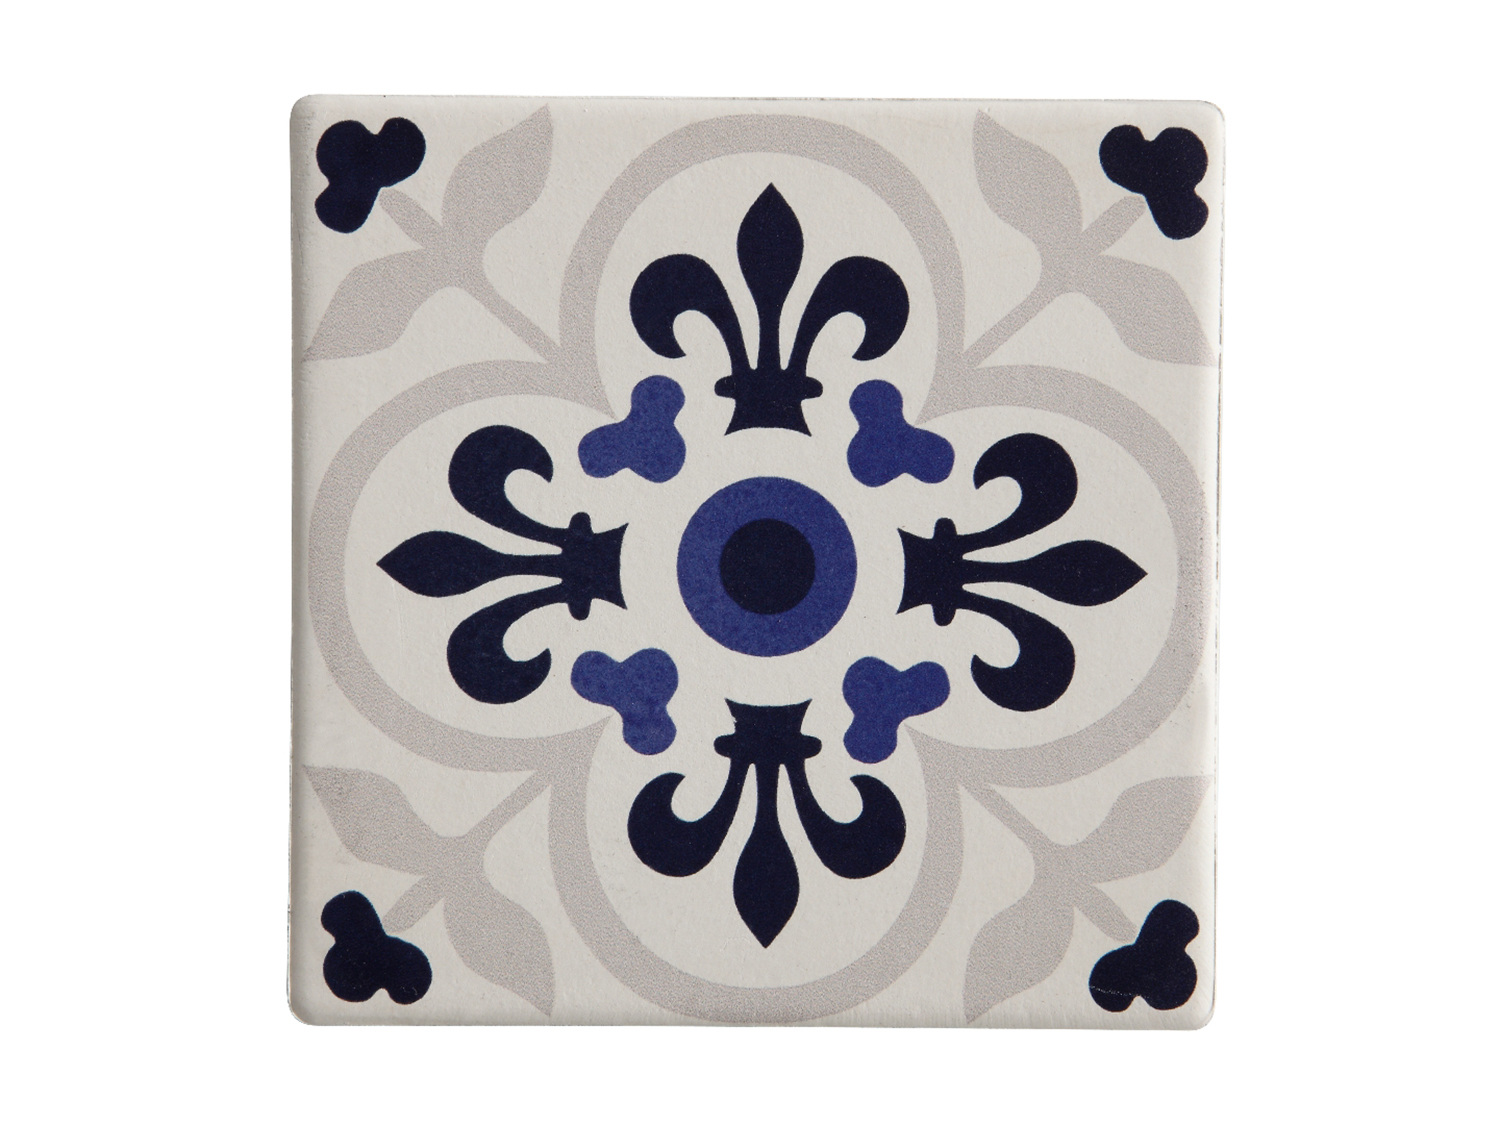 Maxwell & Williams Medina Temara 9Cm Ceramic Square Tile Coaster